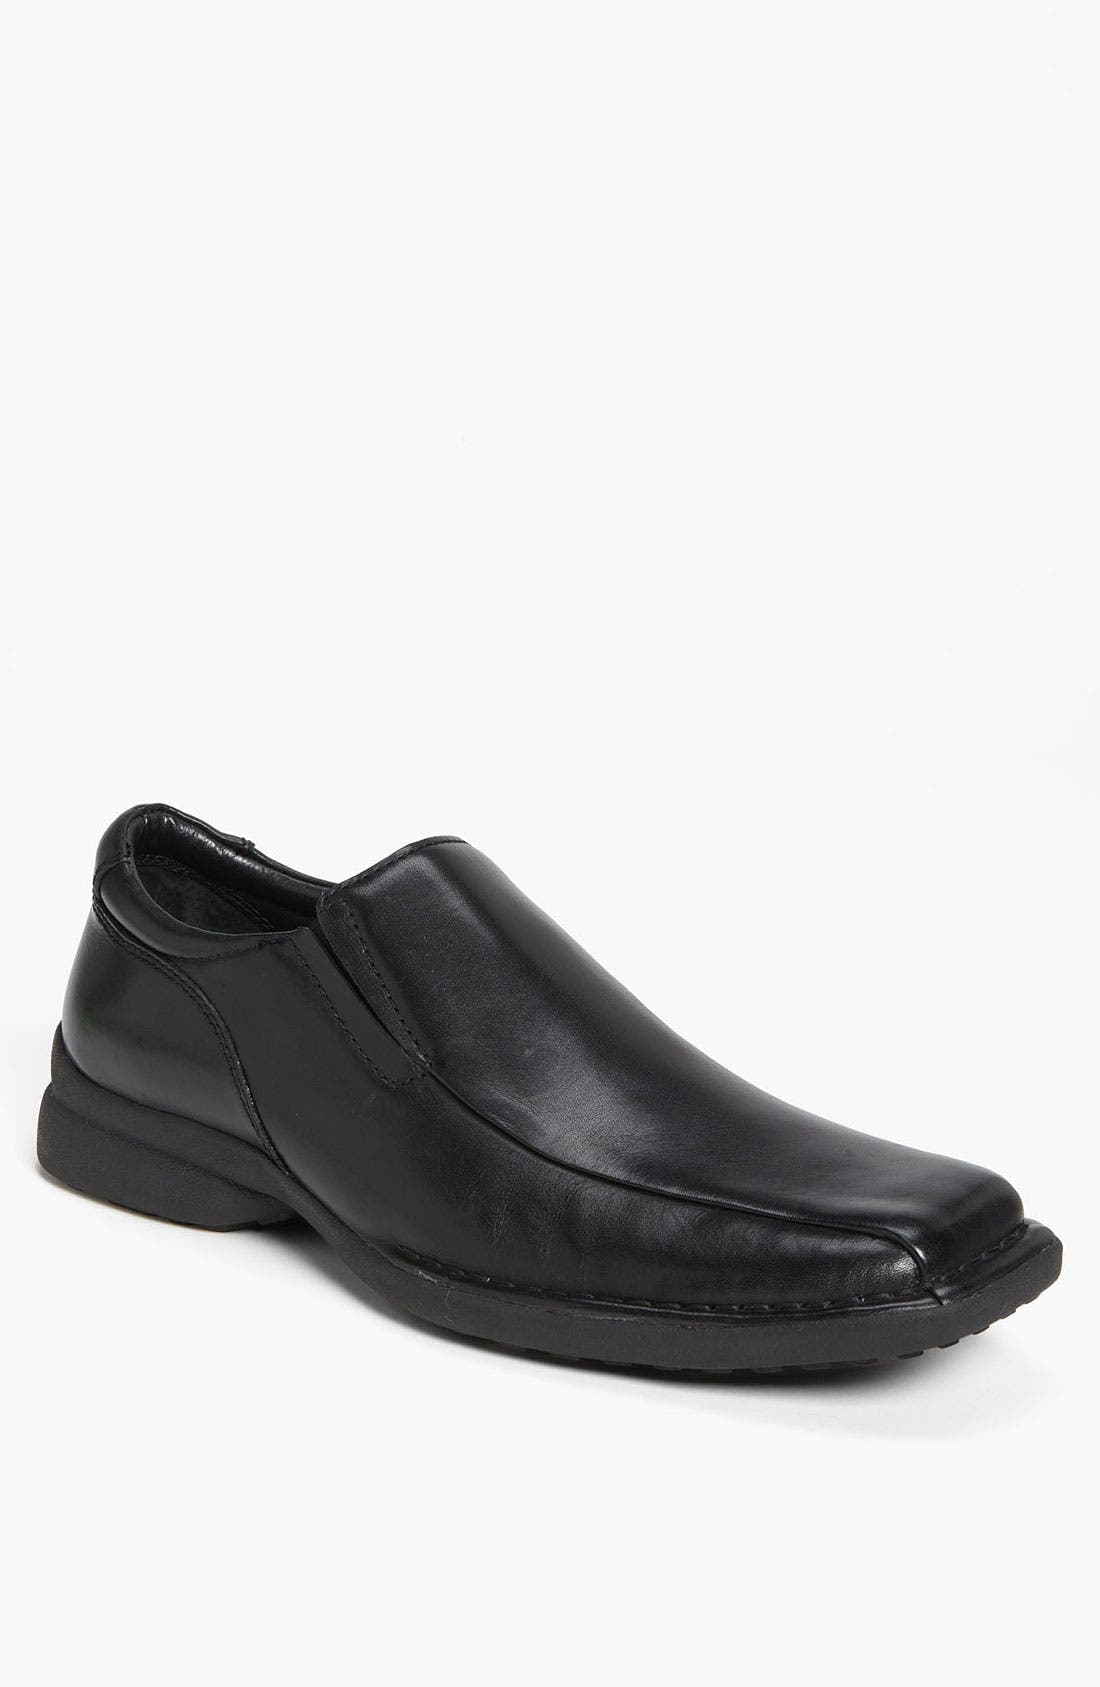 Main Image - Kenneth Cole Reaction 'Punchual' Slip-On